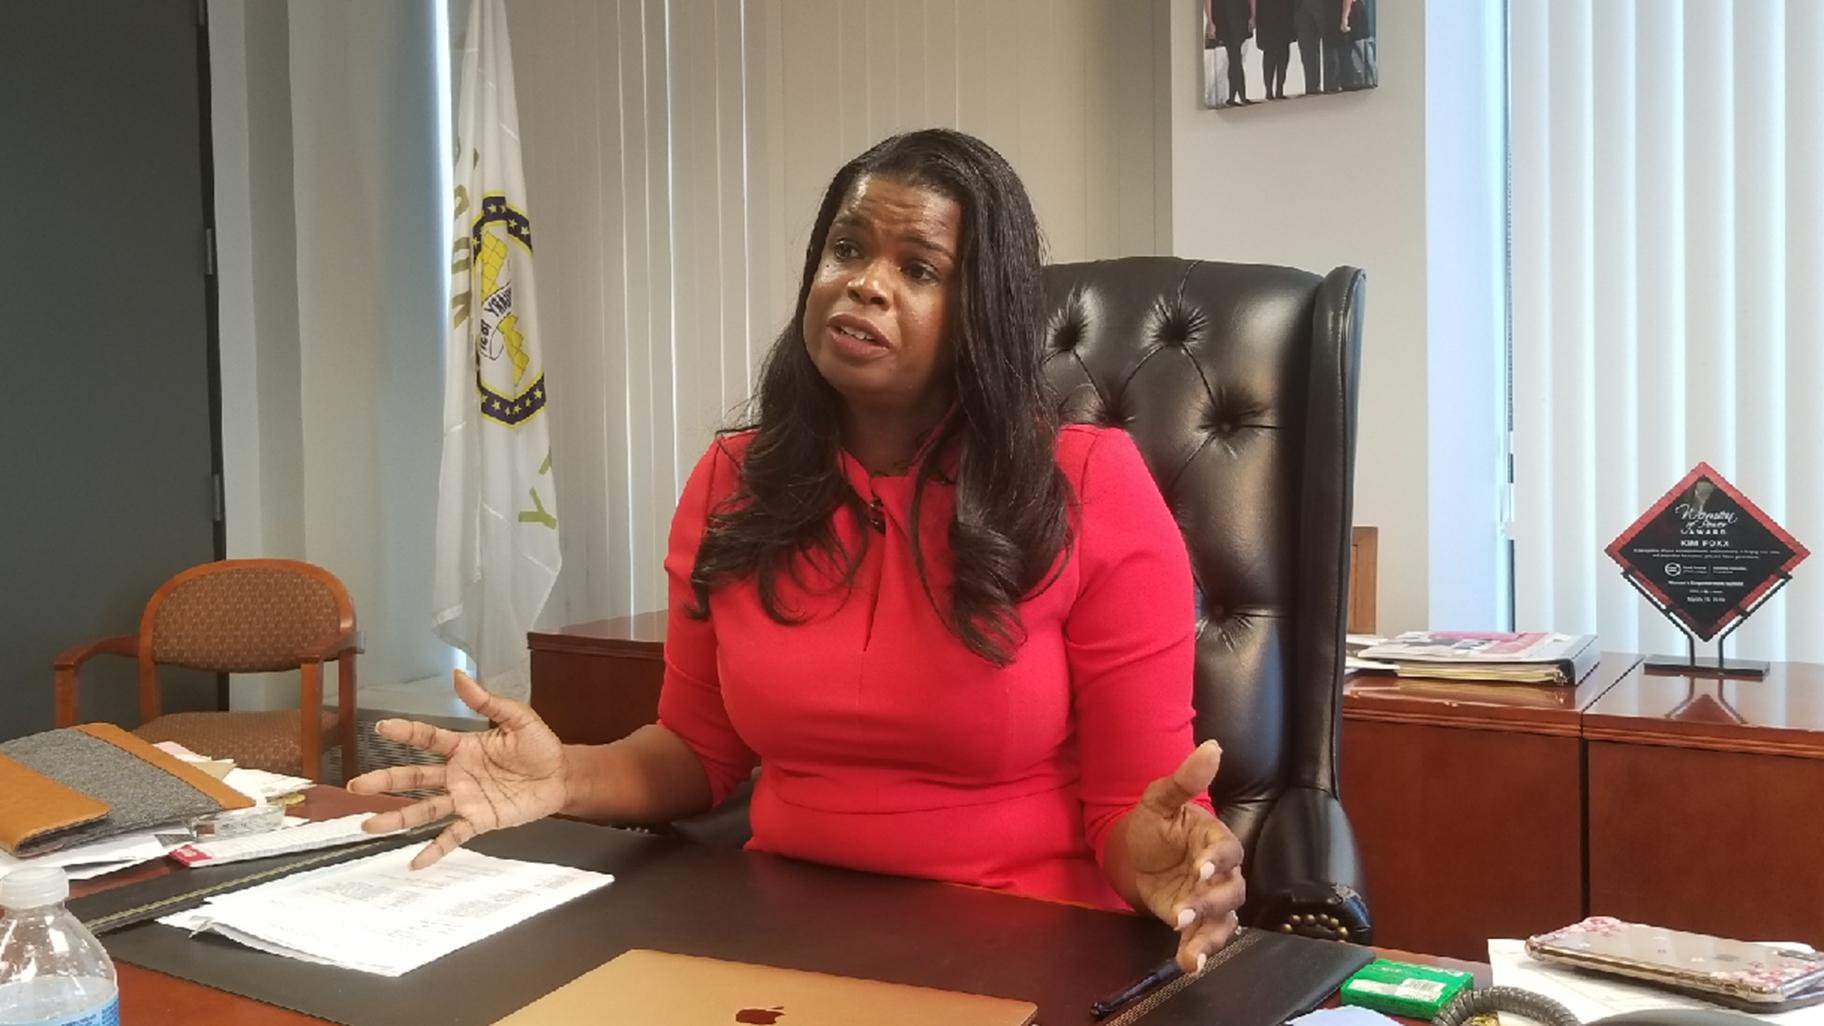 Cook County State's Attorney Kim Foxx speaks with WTTW News on March 27, 2019 to explain why the charges against Jussie Smollett were dismissed.